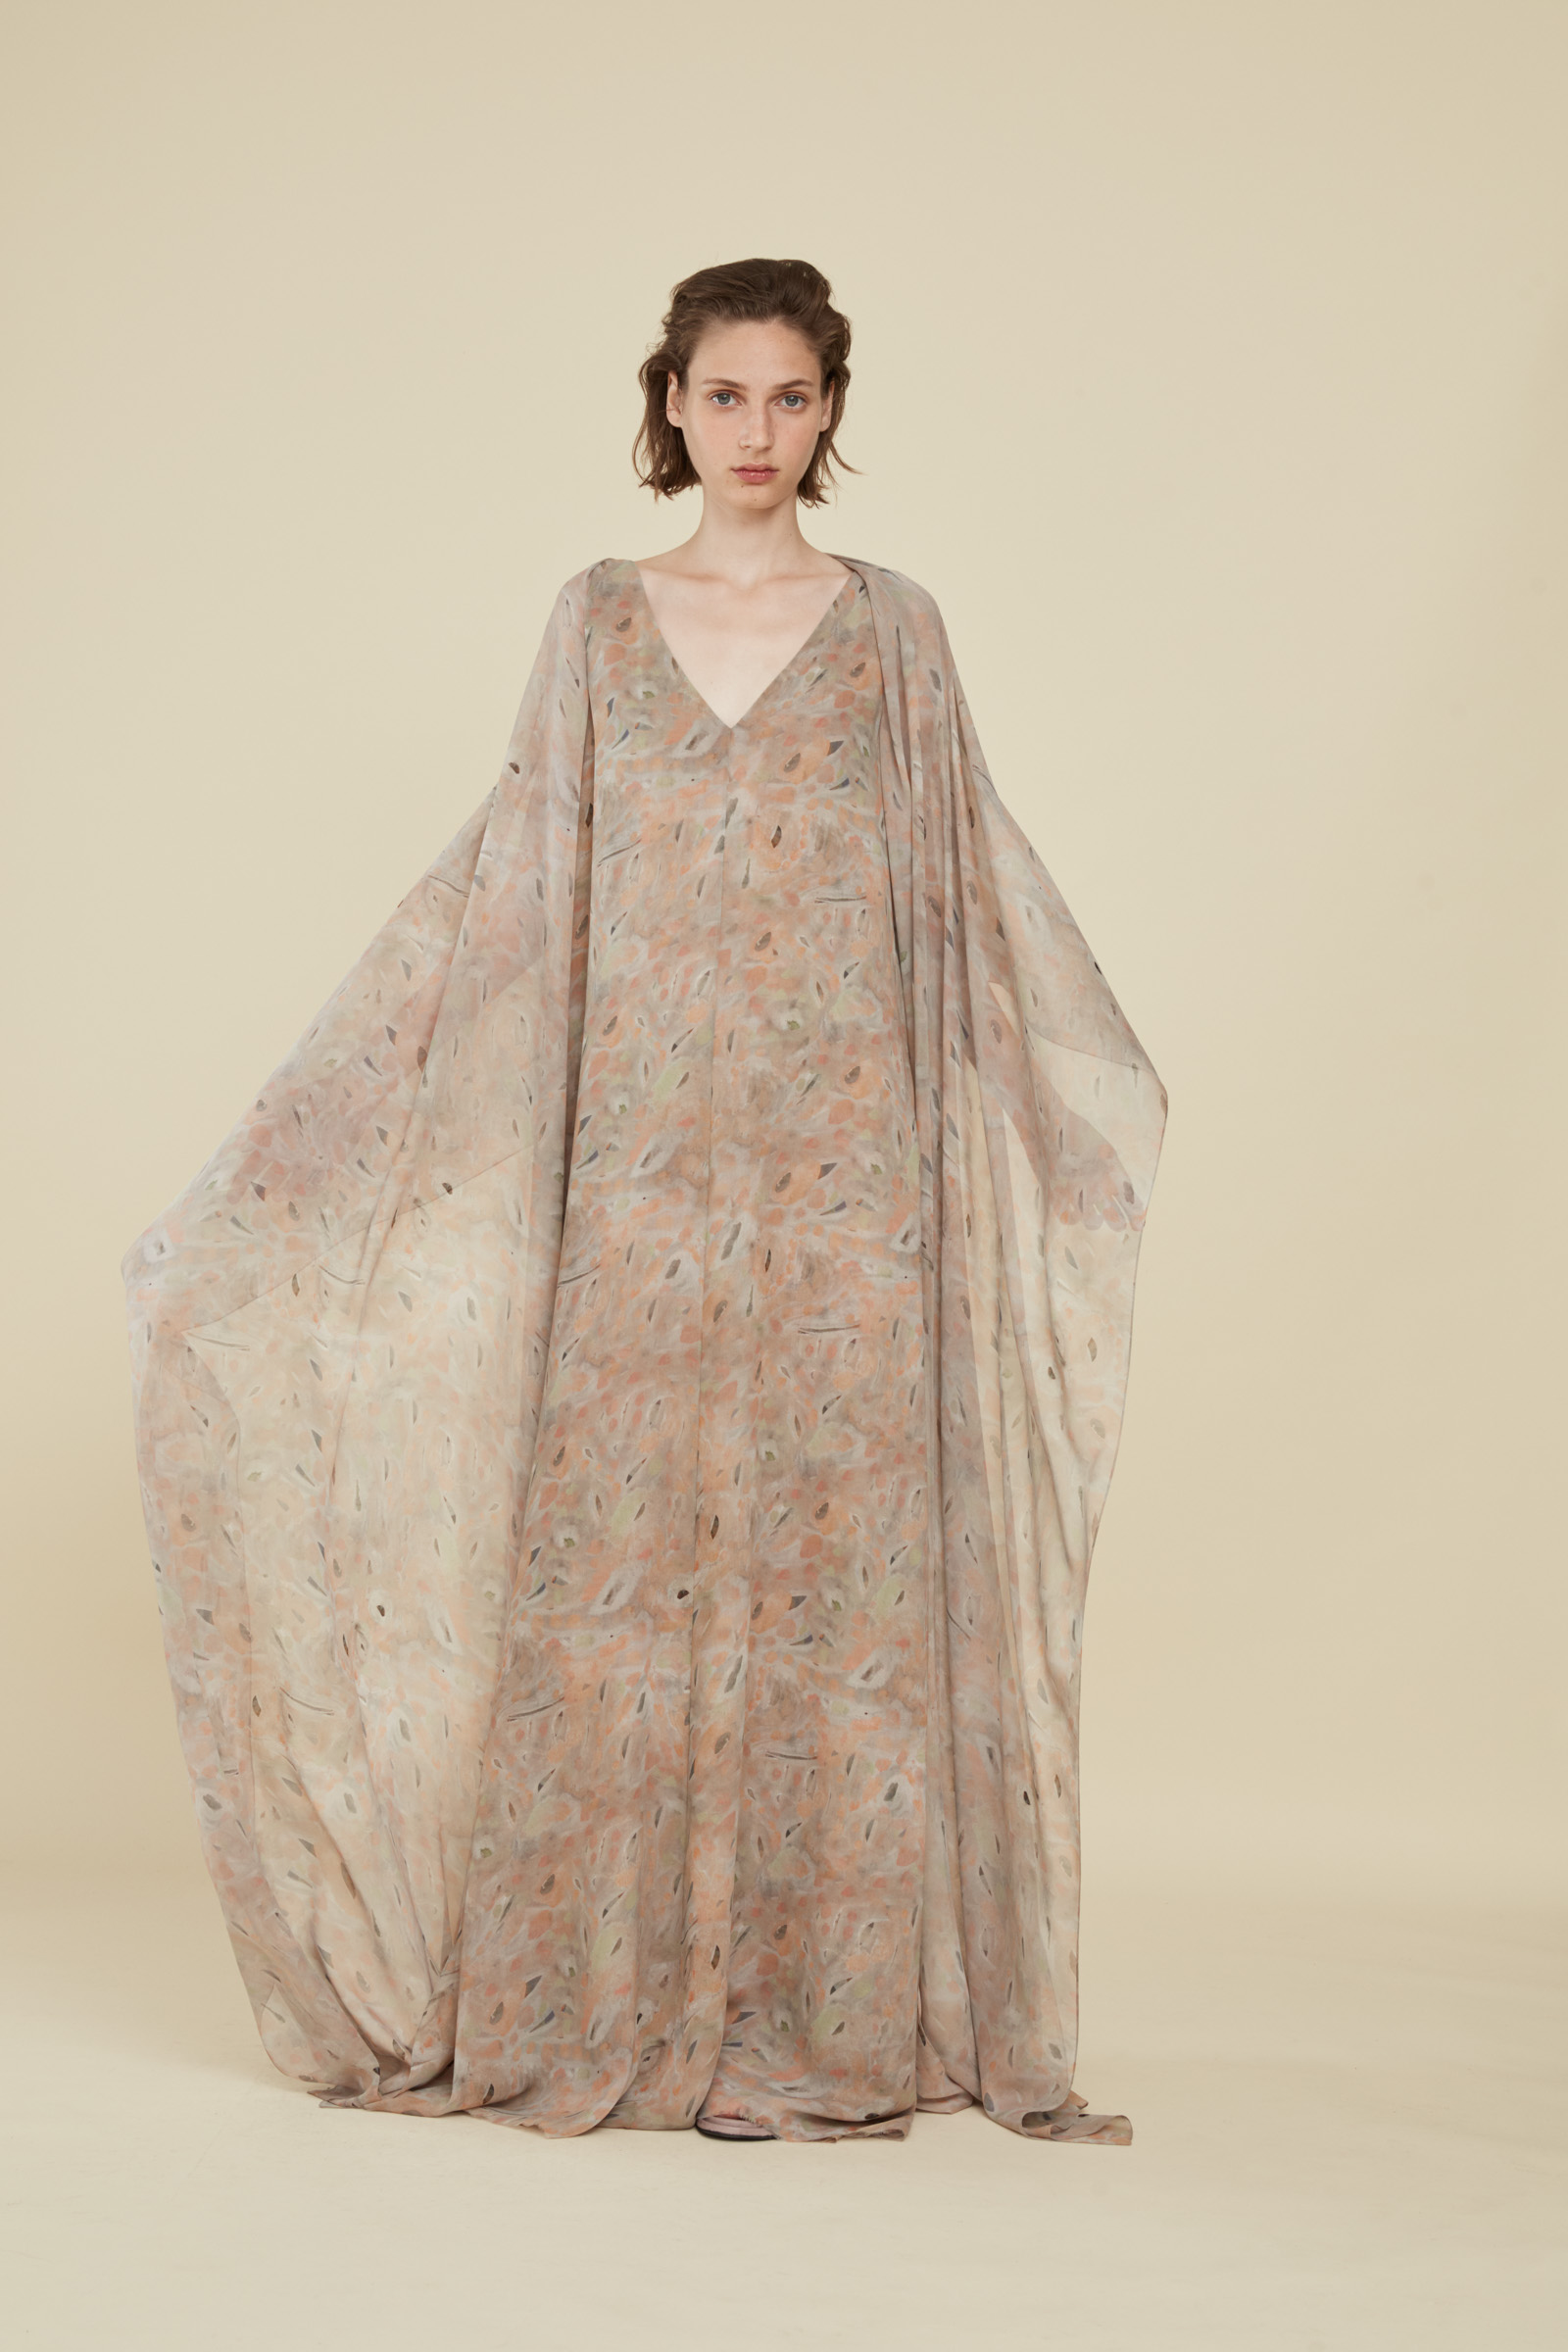 MACEDONIA PRINT SILK KAFTAN, DRESSES collection – Cortana Moda